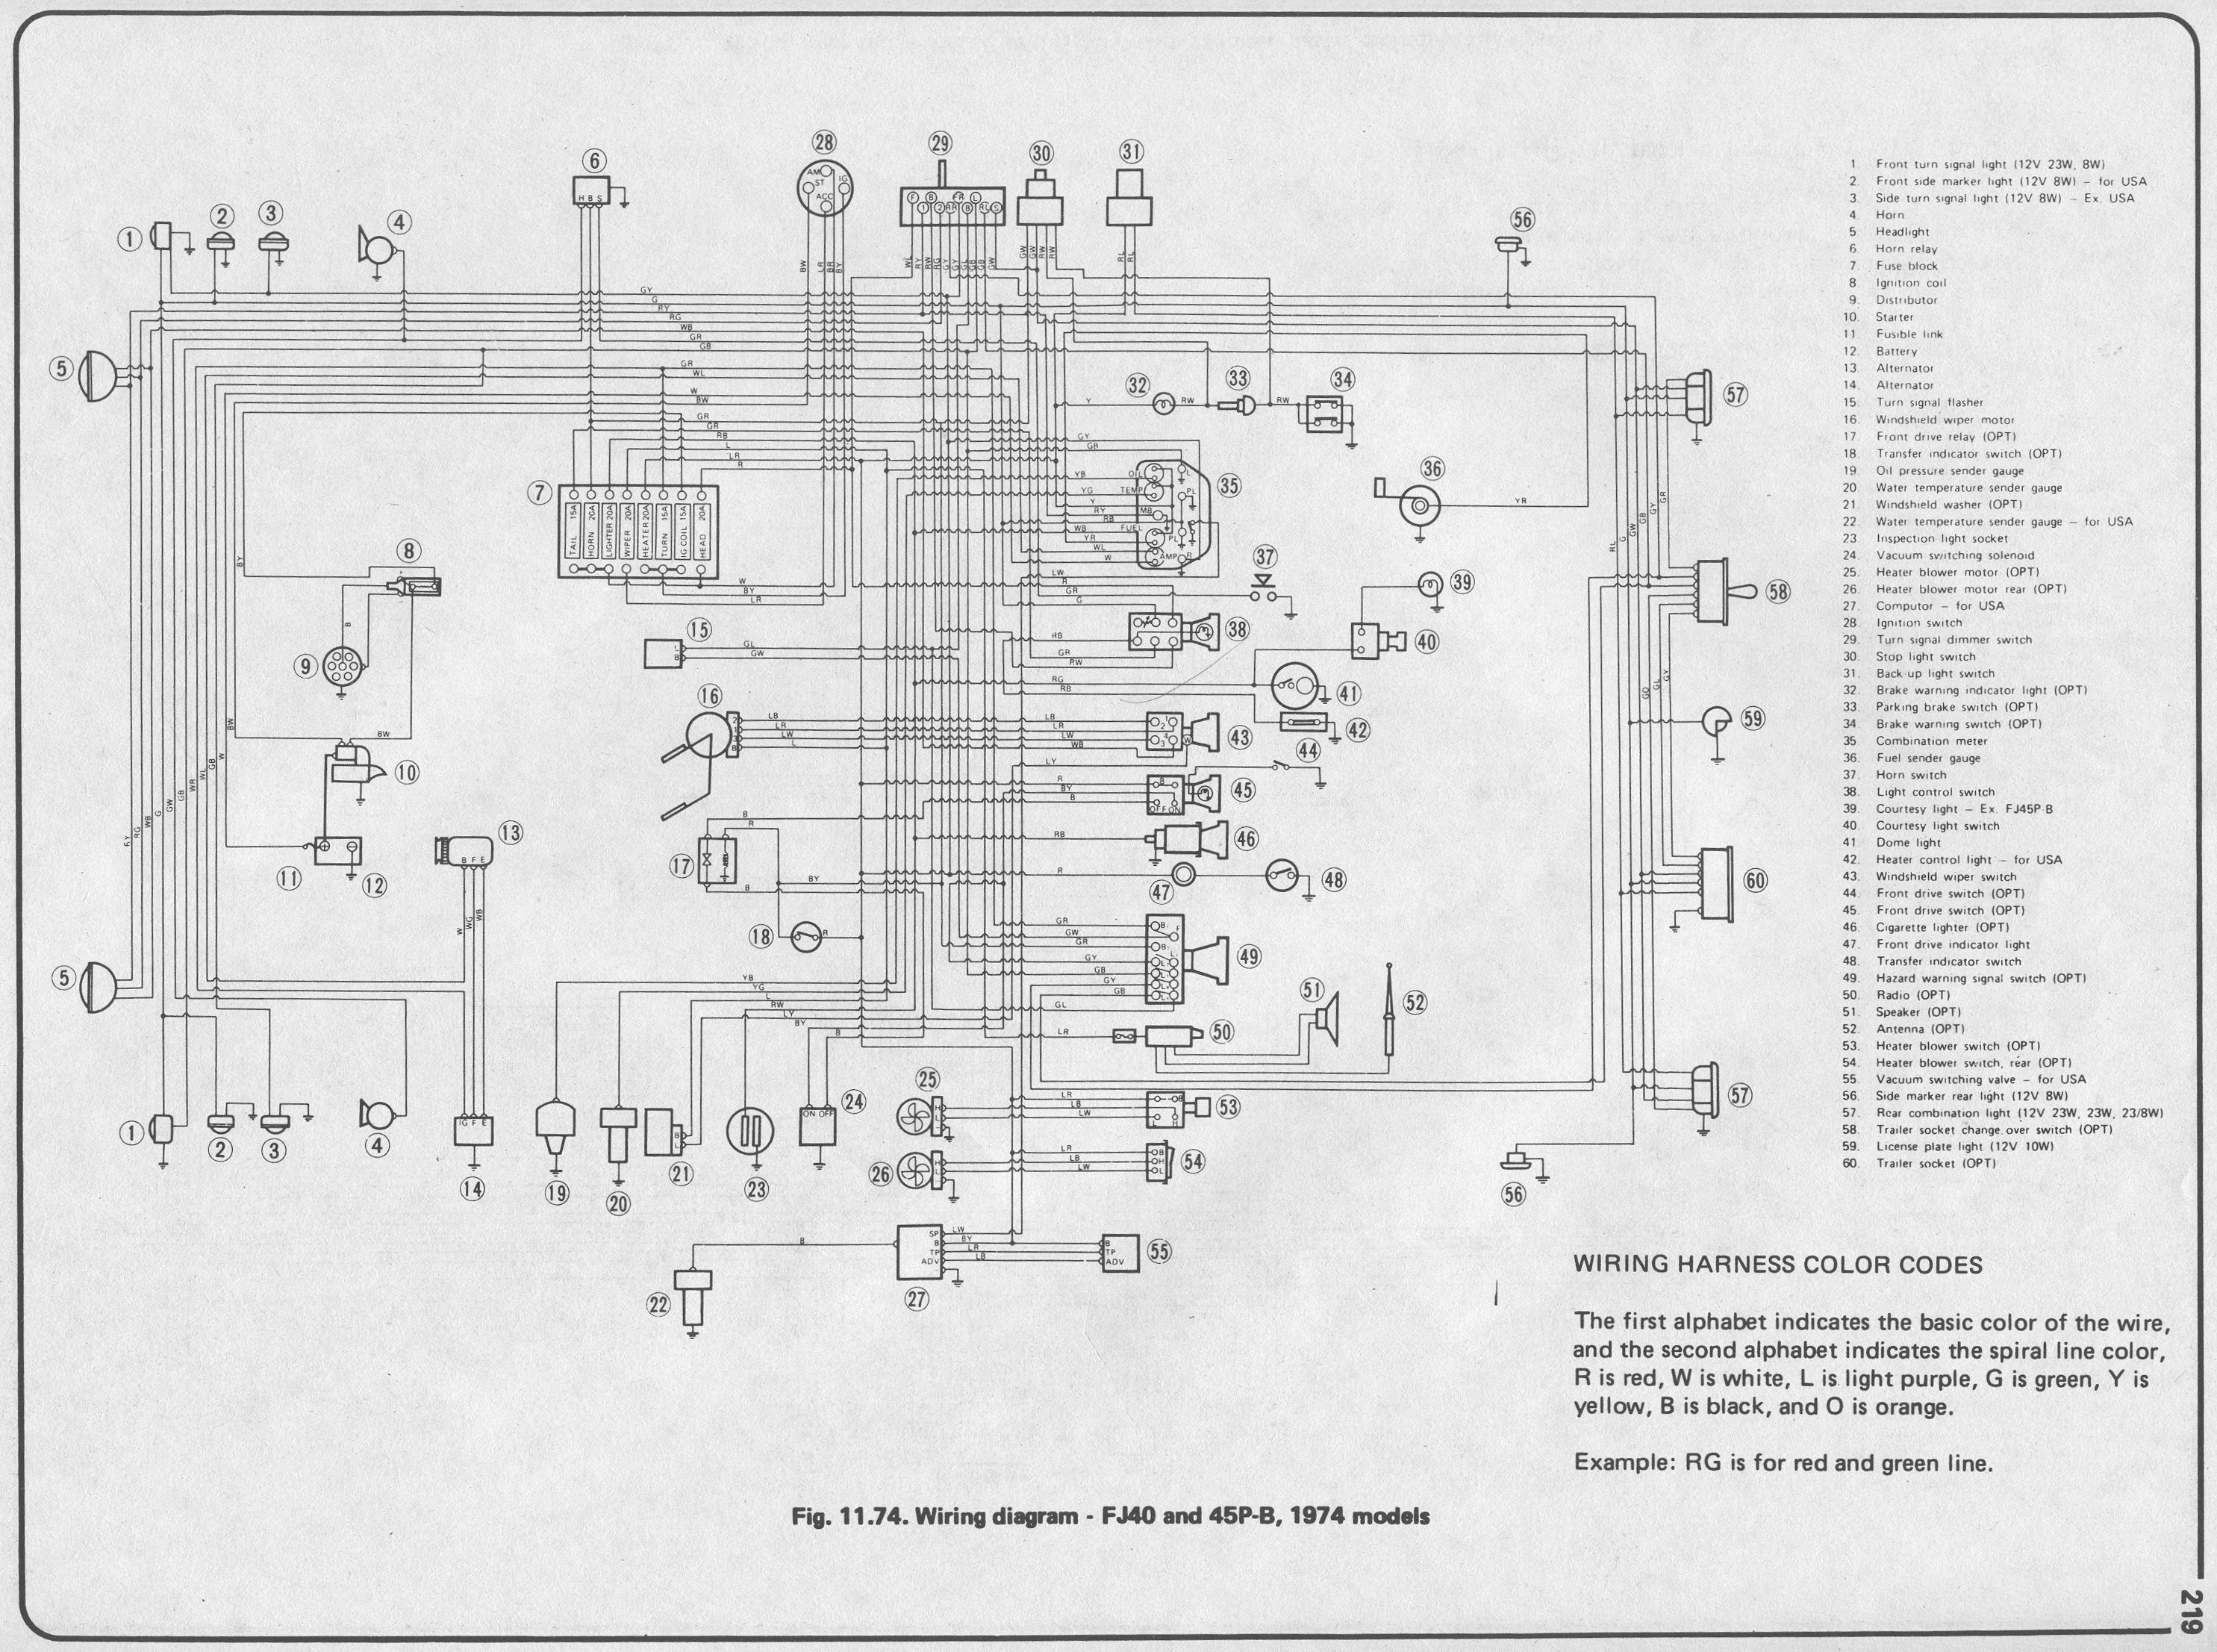 small resolution of h131 wexco wiper motor wiring diagram wiring diagrams for your carfj40 wiper motor wiring diagram h131